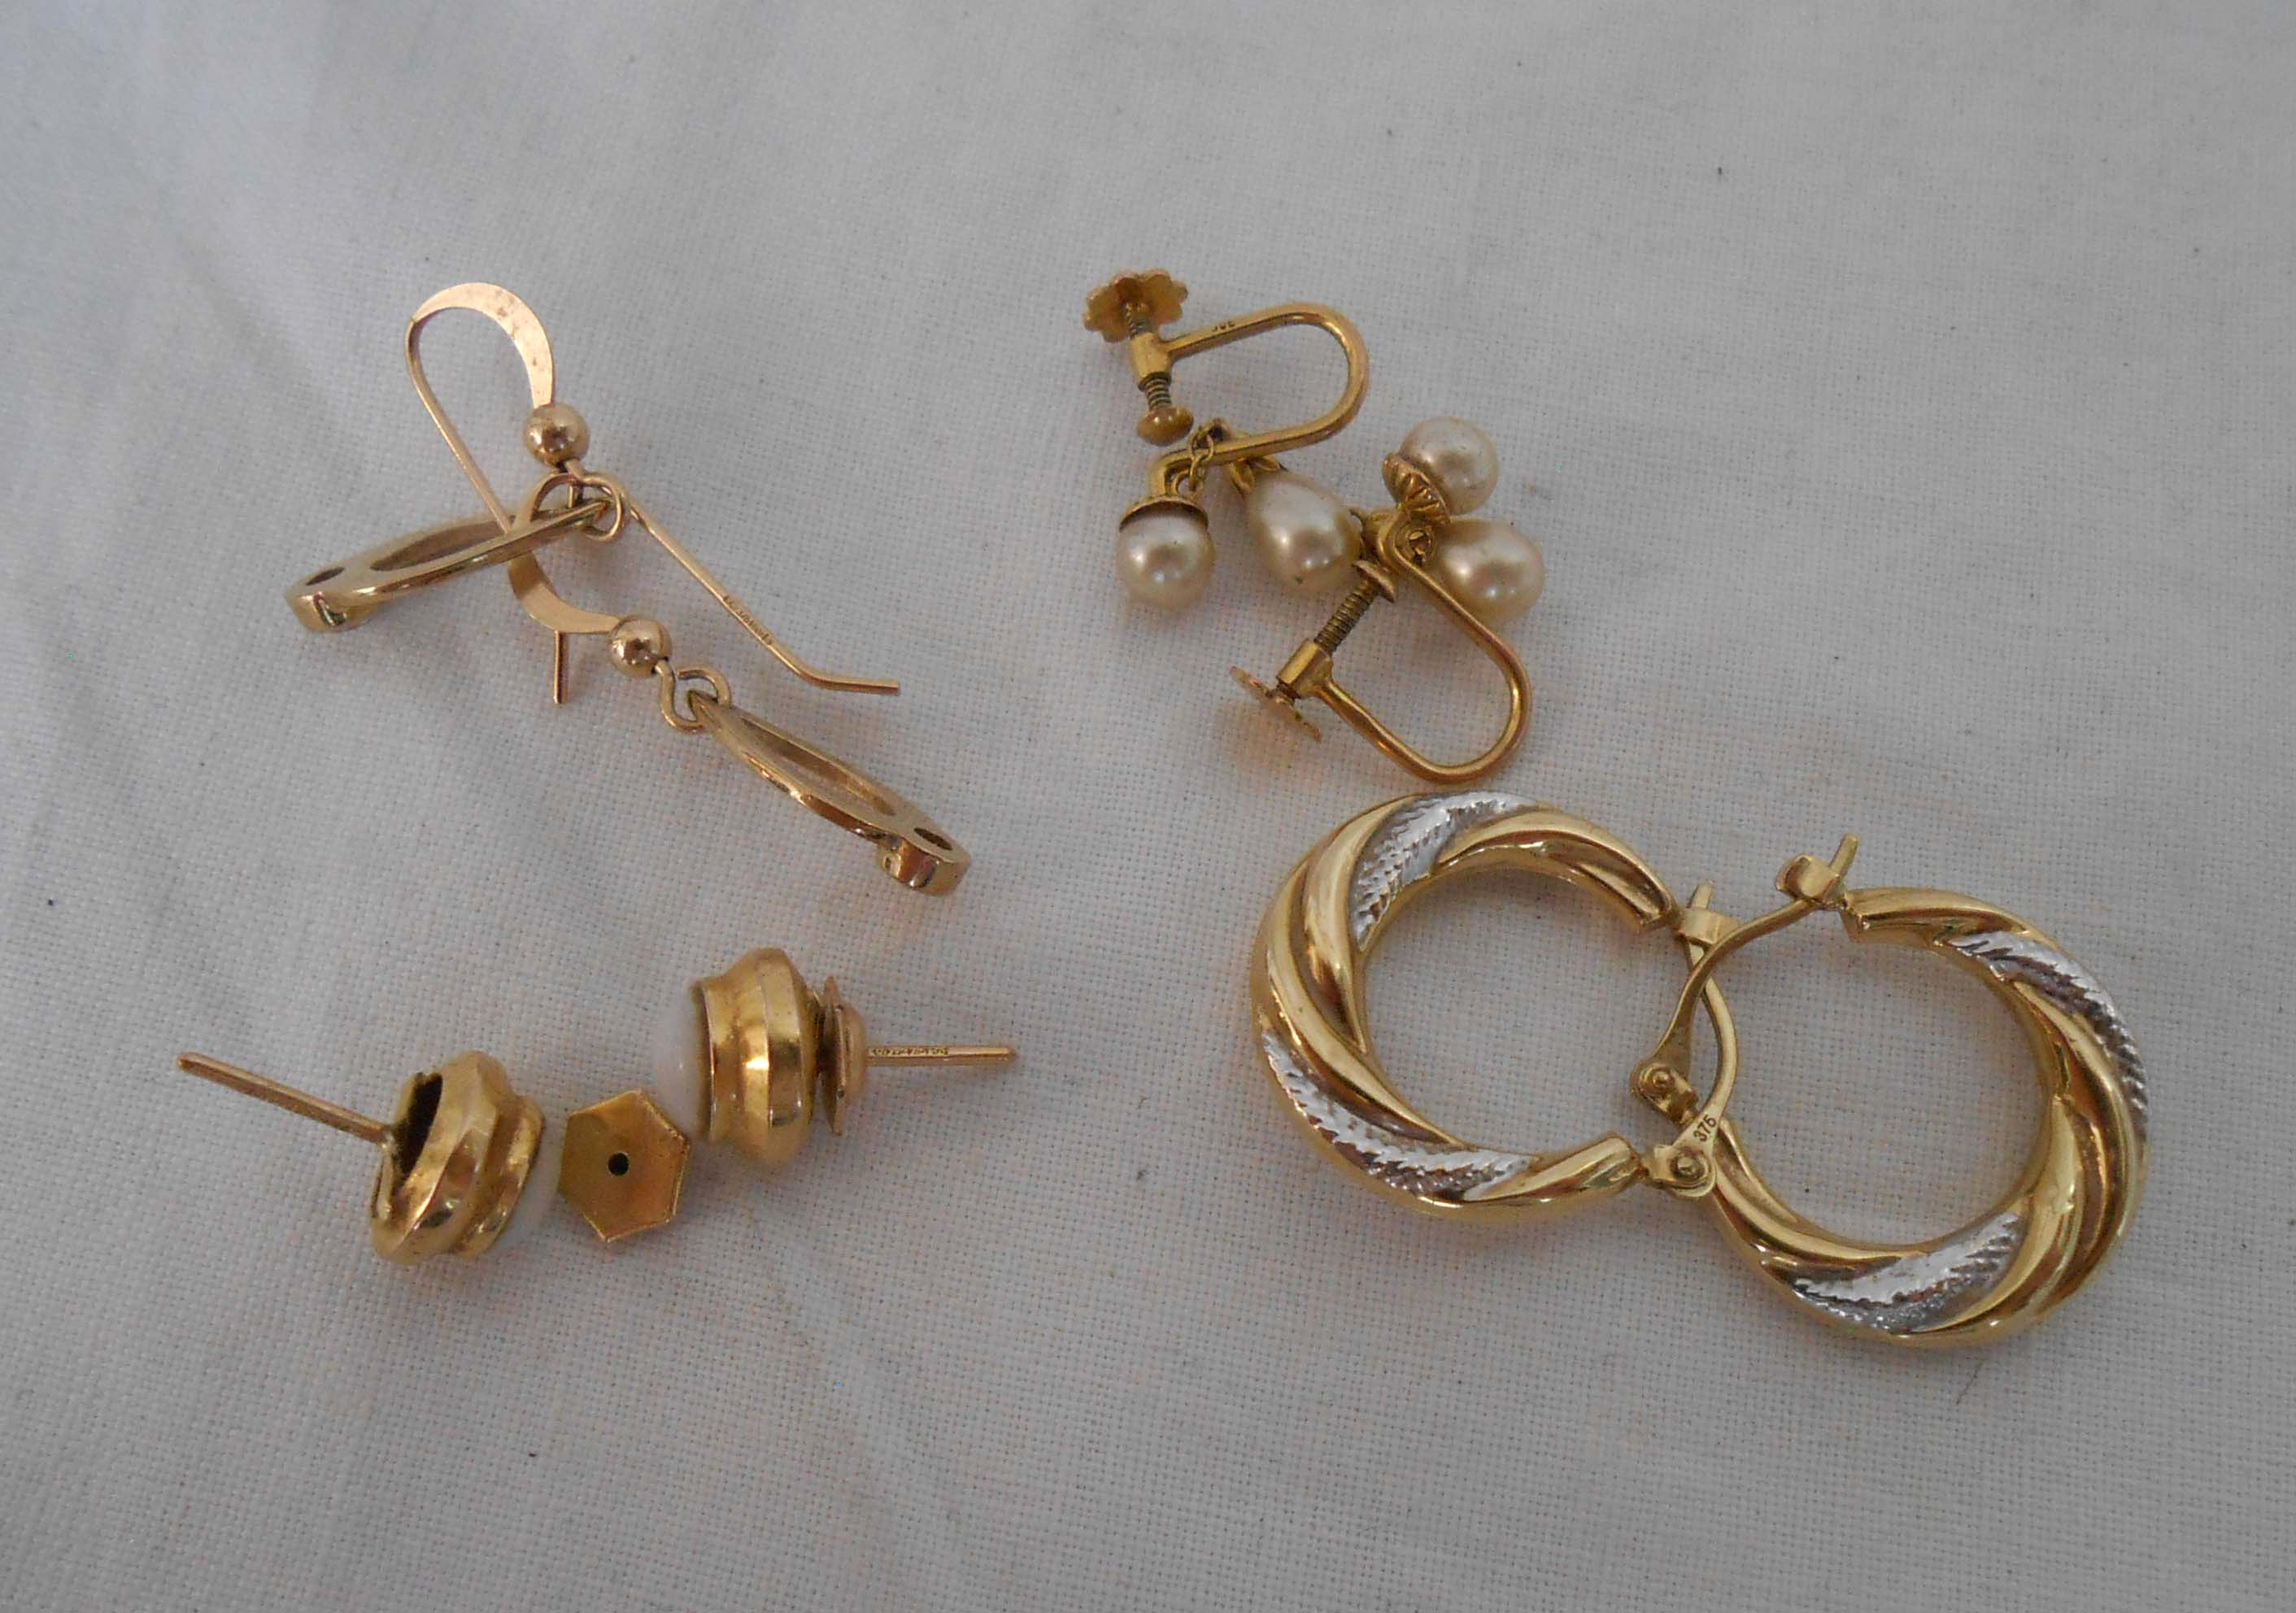 A pair of 9ct. gold half hoop ear-rings and two pairs of others